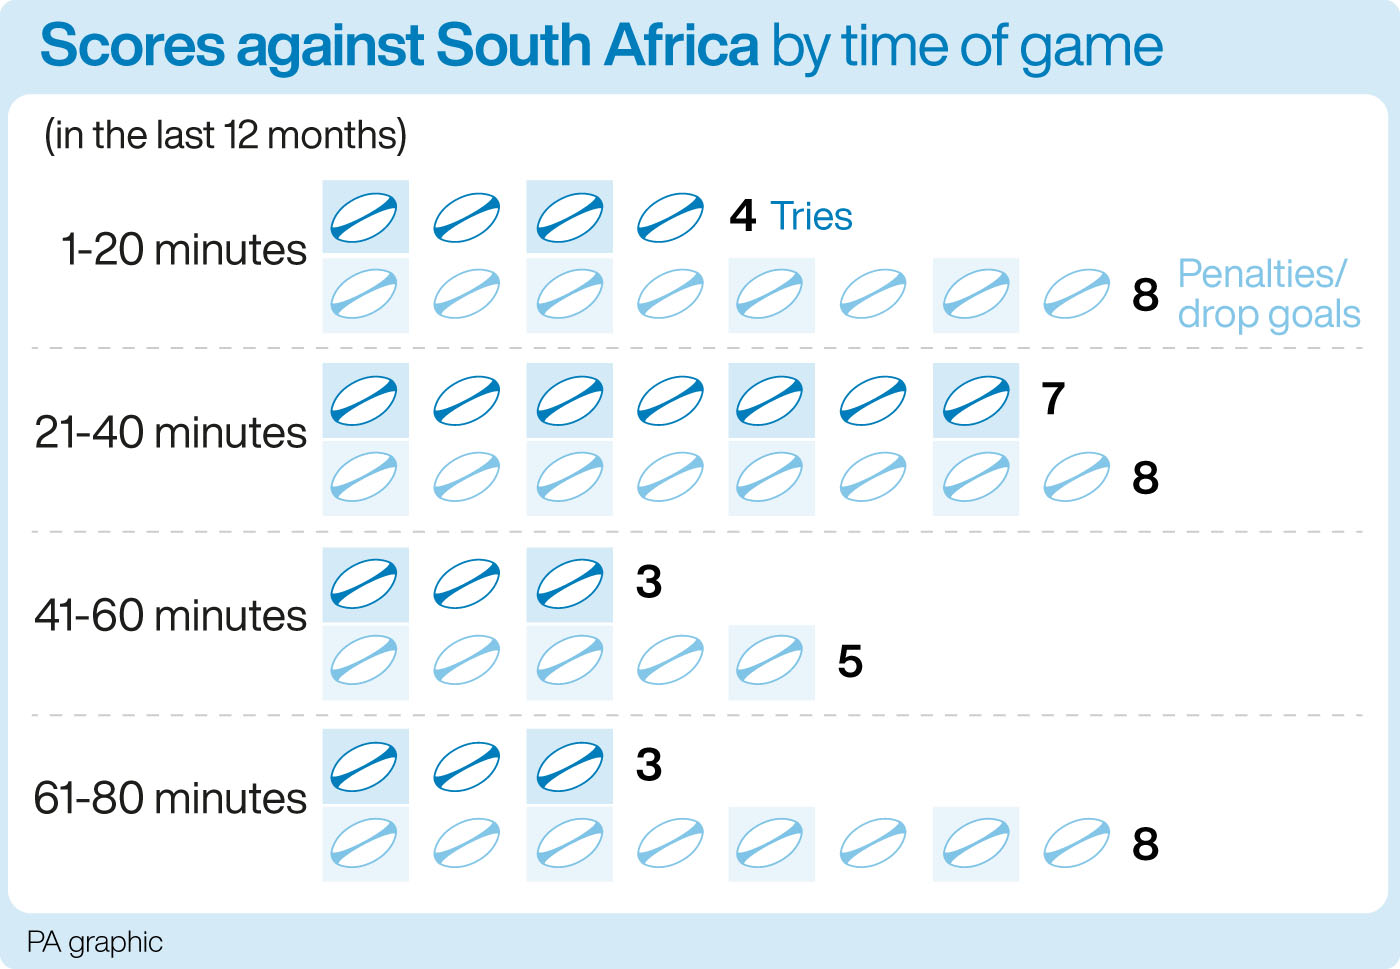 Scores against South Africa, by time of game